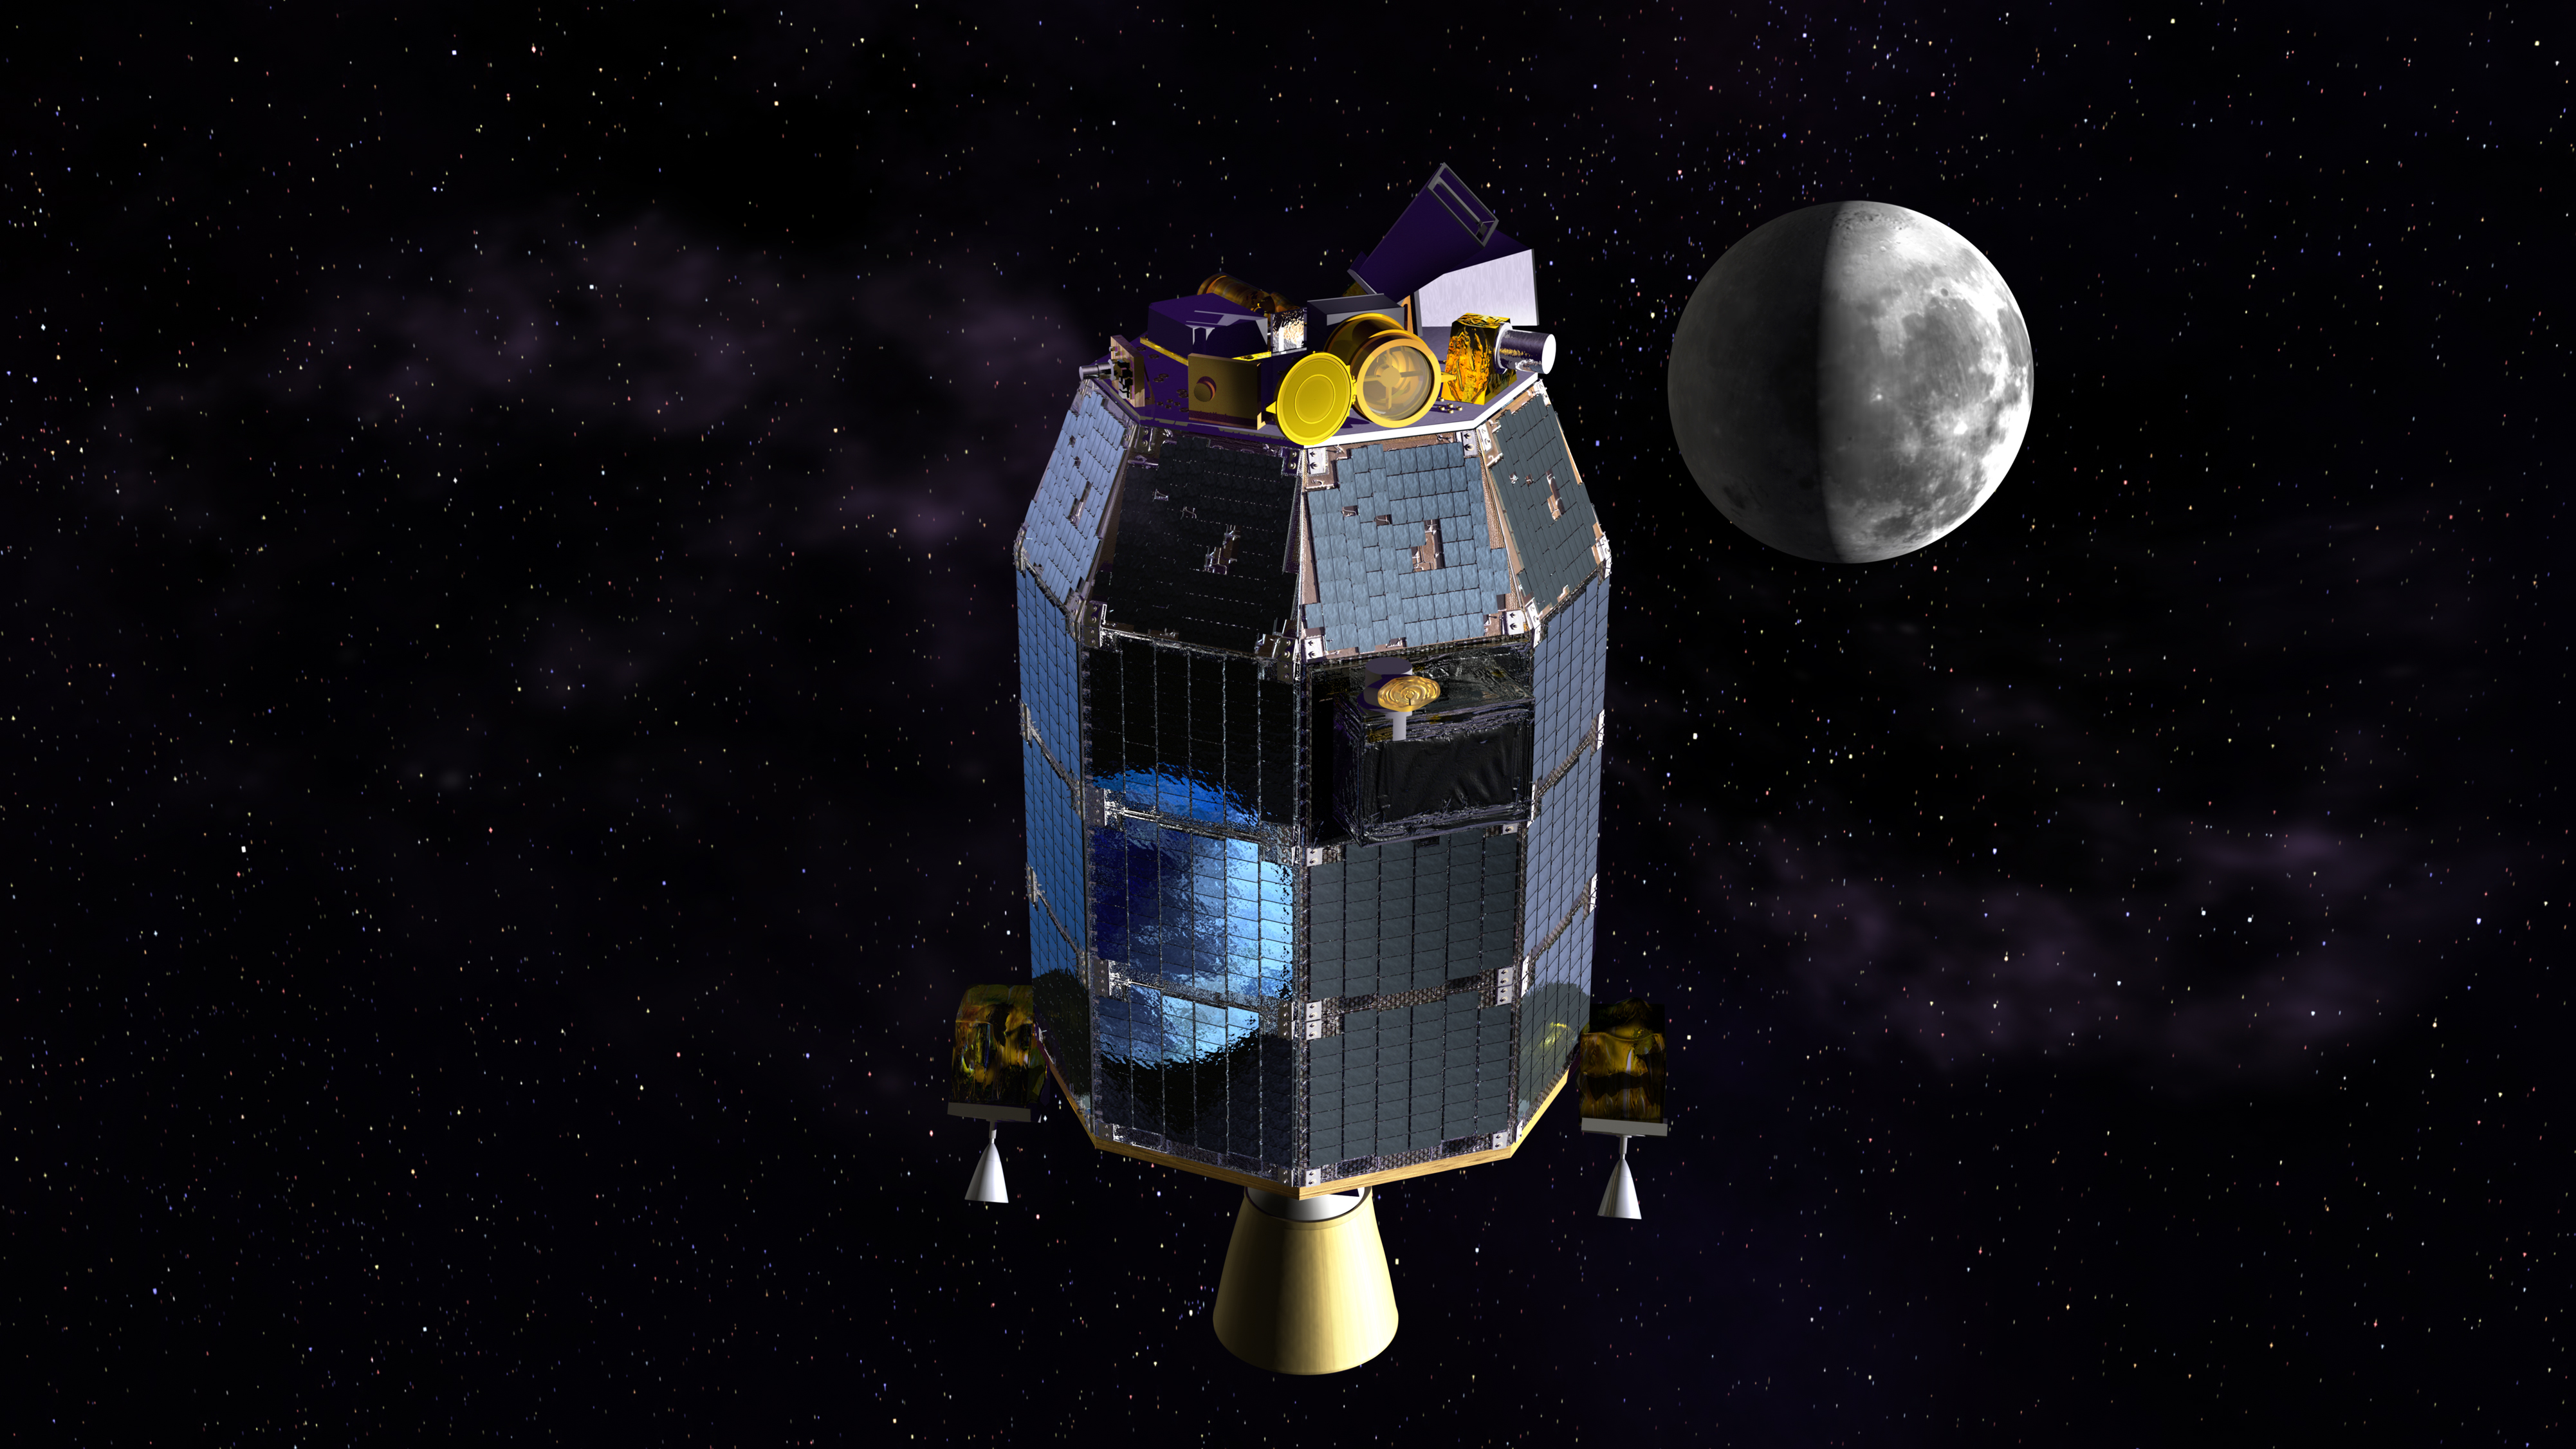 LADEE Project Manager Update: Initial Checkout Complete | NASA